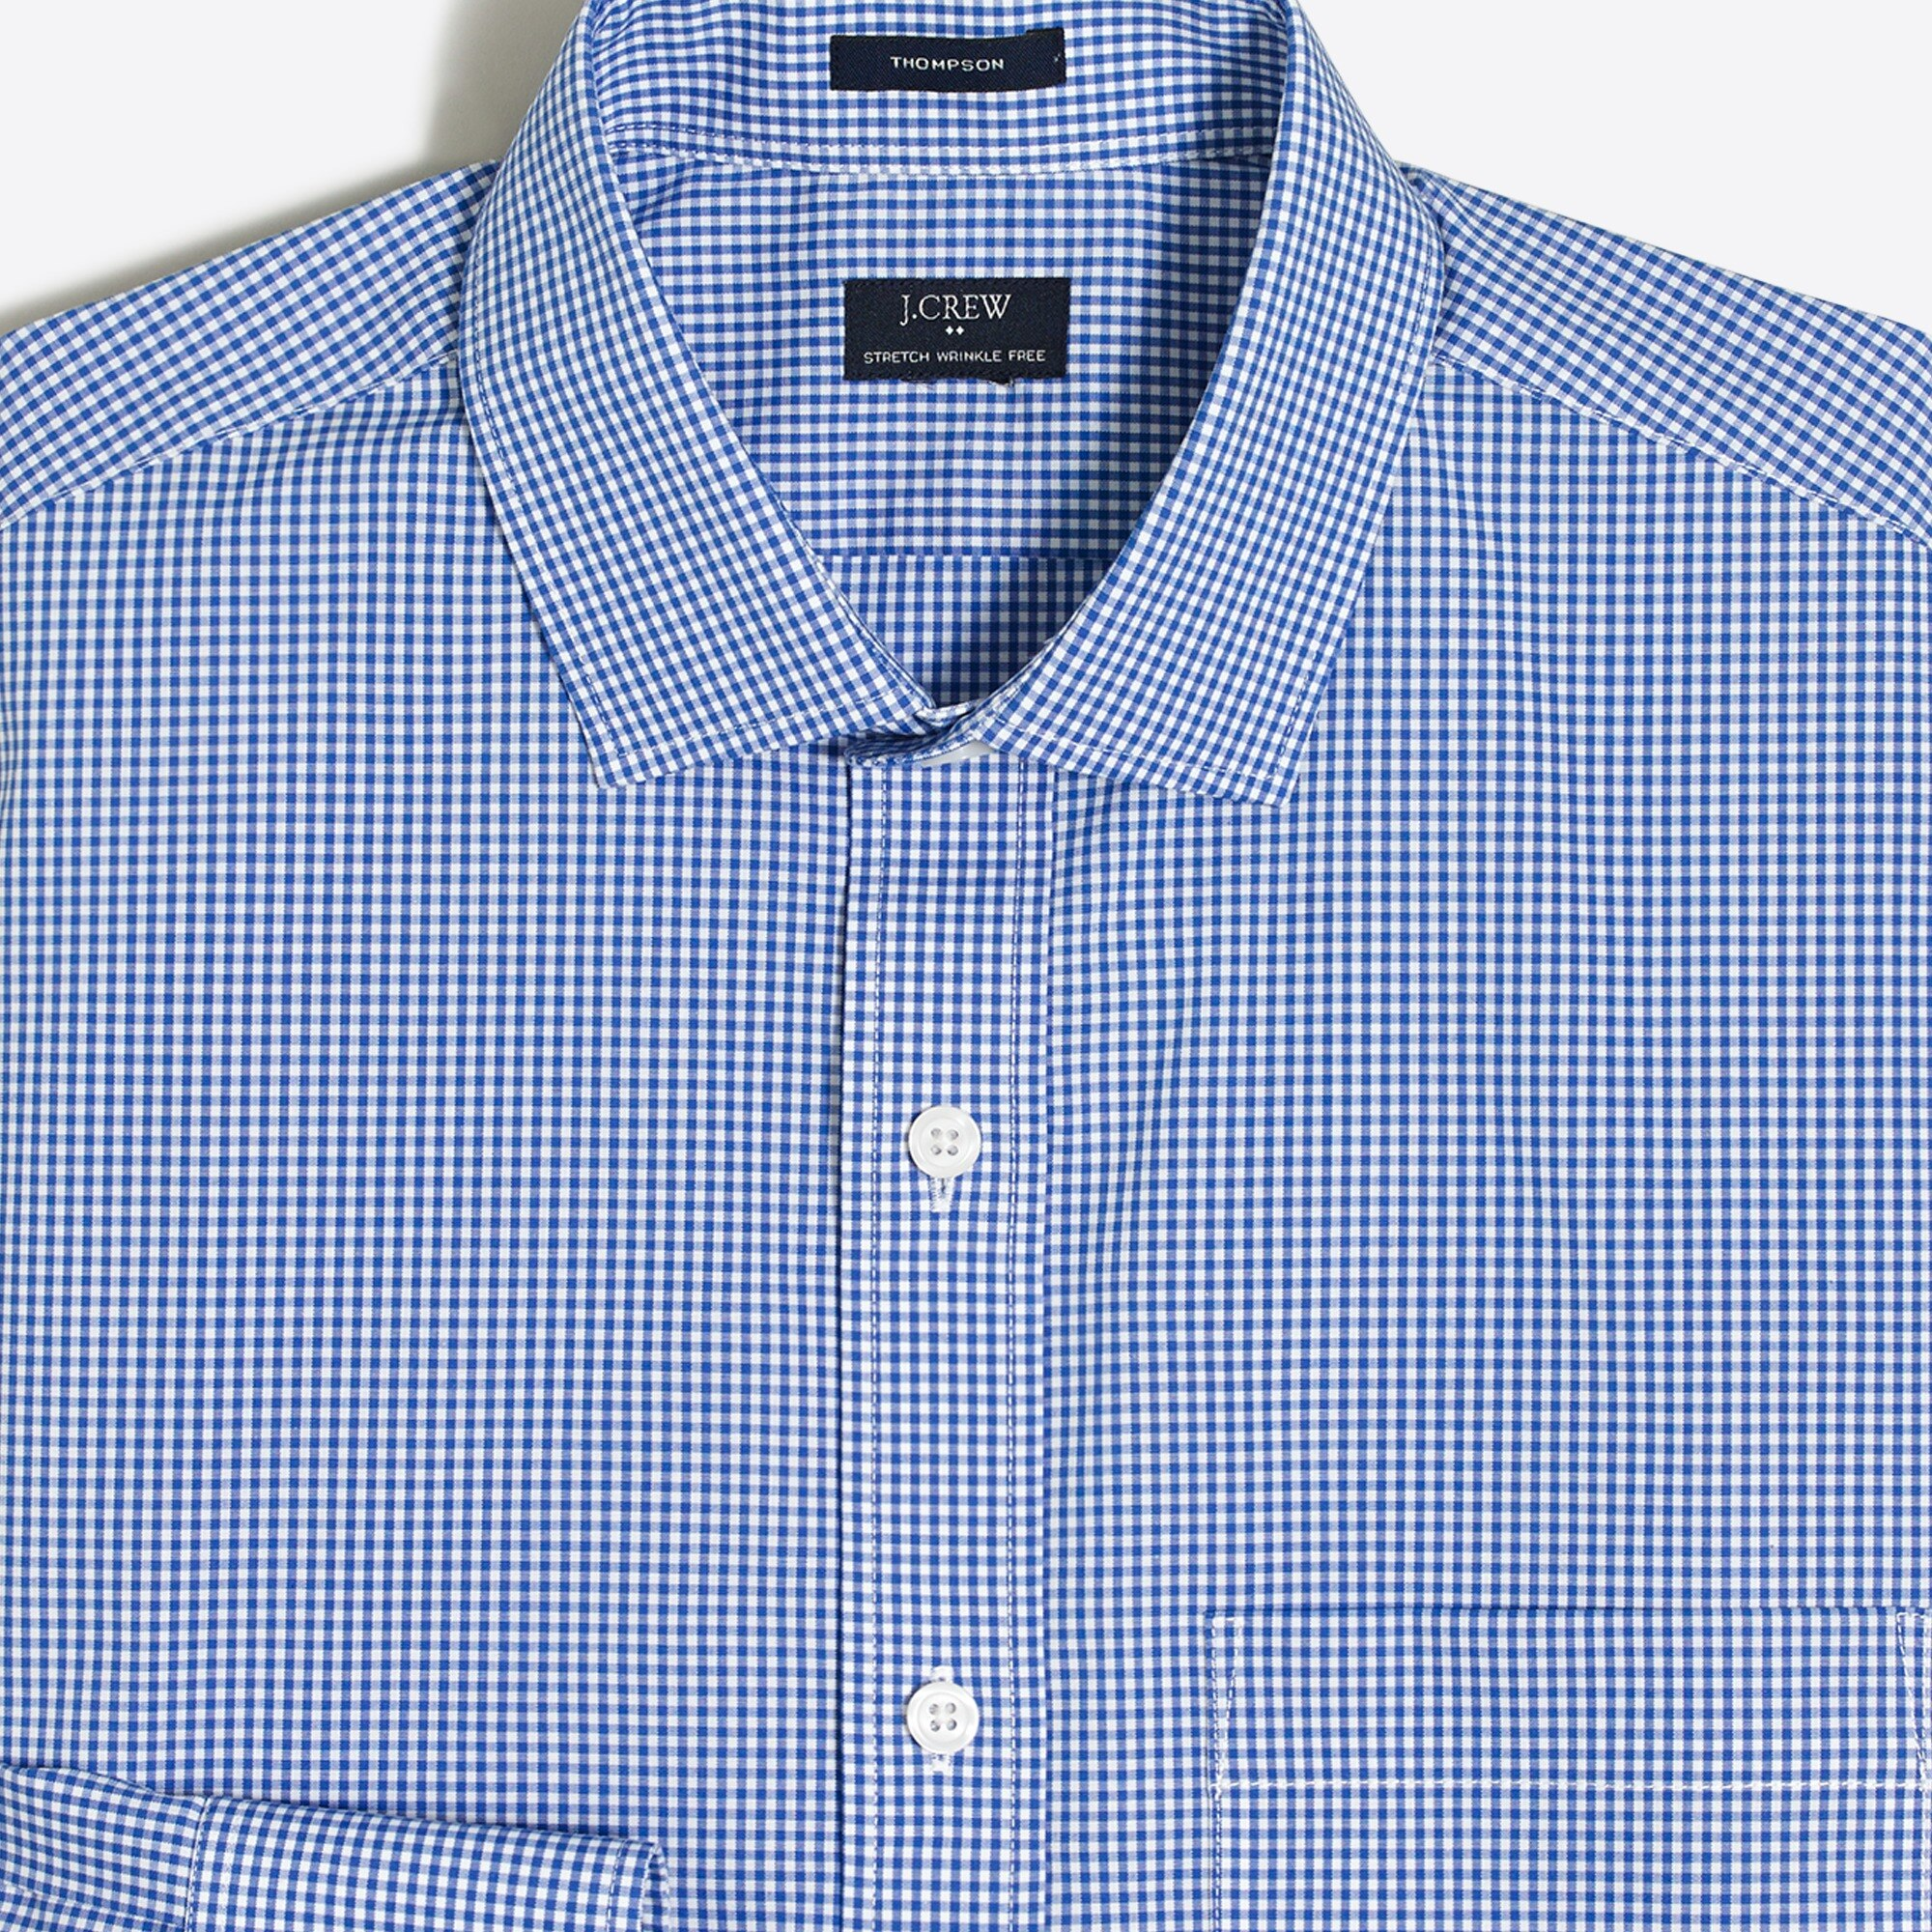 Thompson slim flex wrinkle-free dress shirt